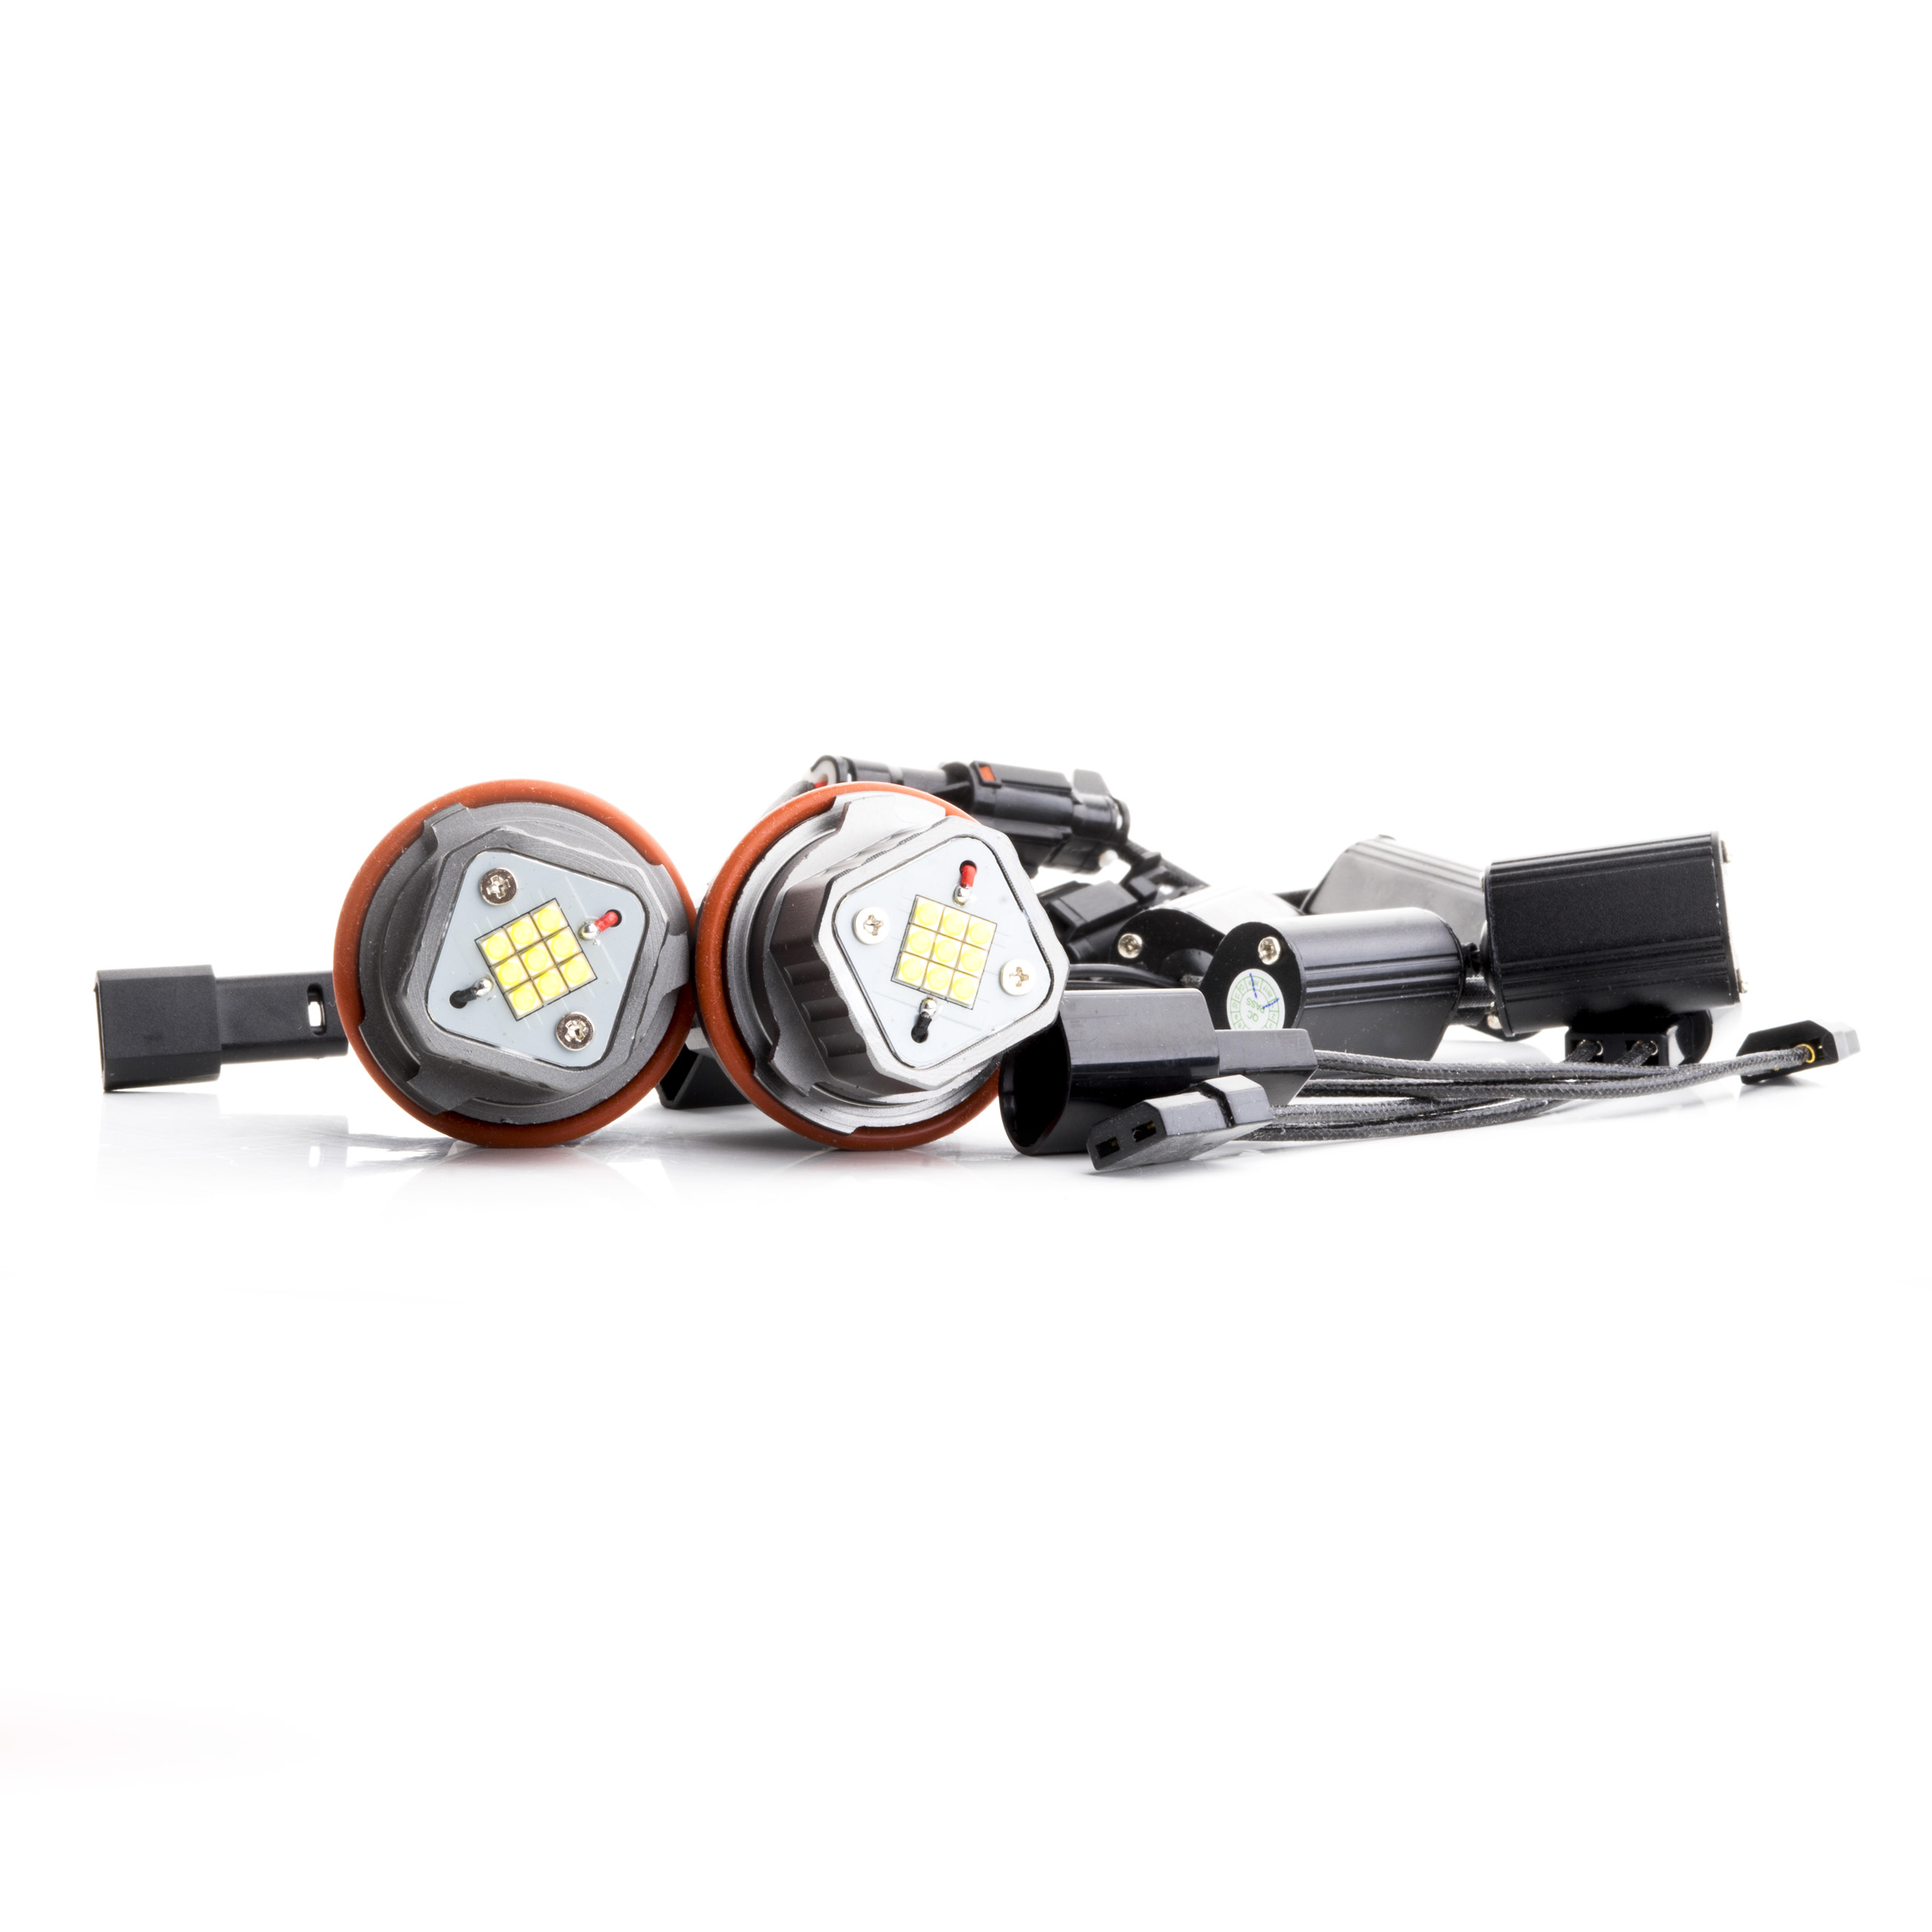 LED Markery 2 x 80W (OSRAM) do kroužků BMW 5 E60/E61 (2003-03/2007)